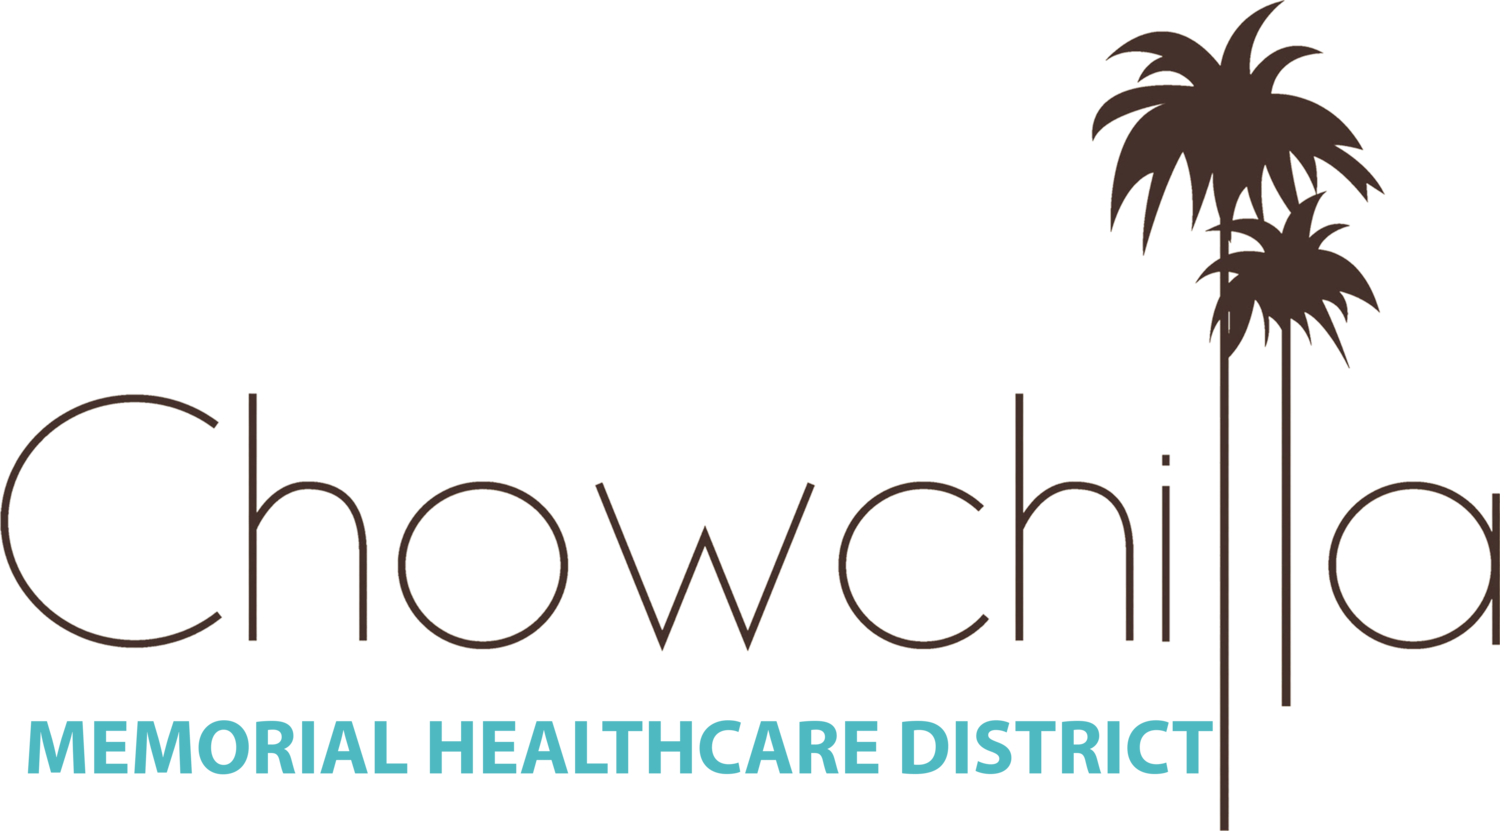 Patient clipart skilled nursing facility. Chowchilla